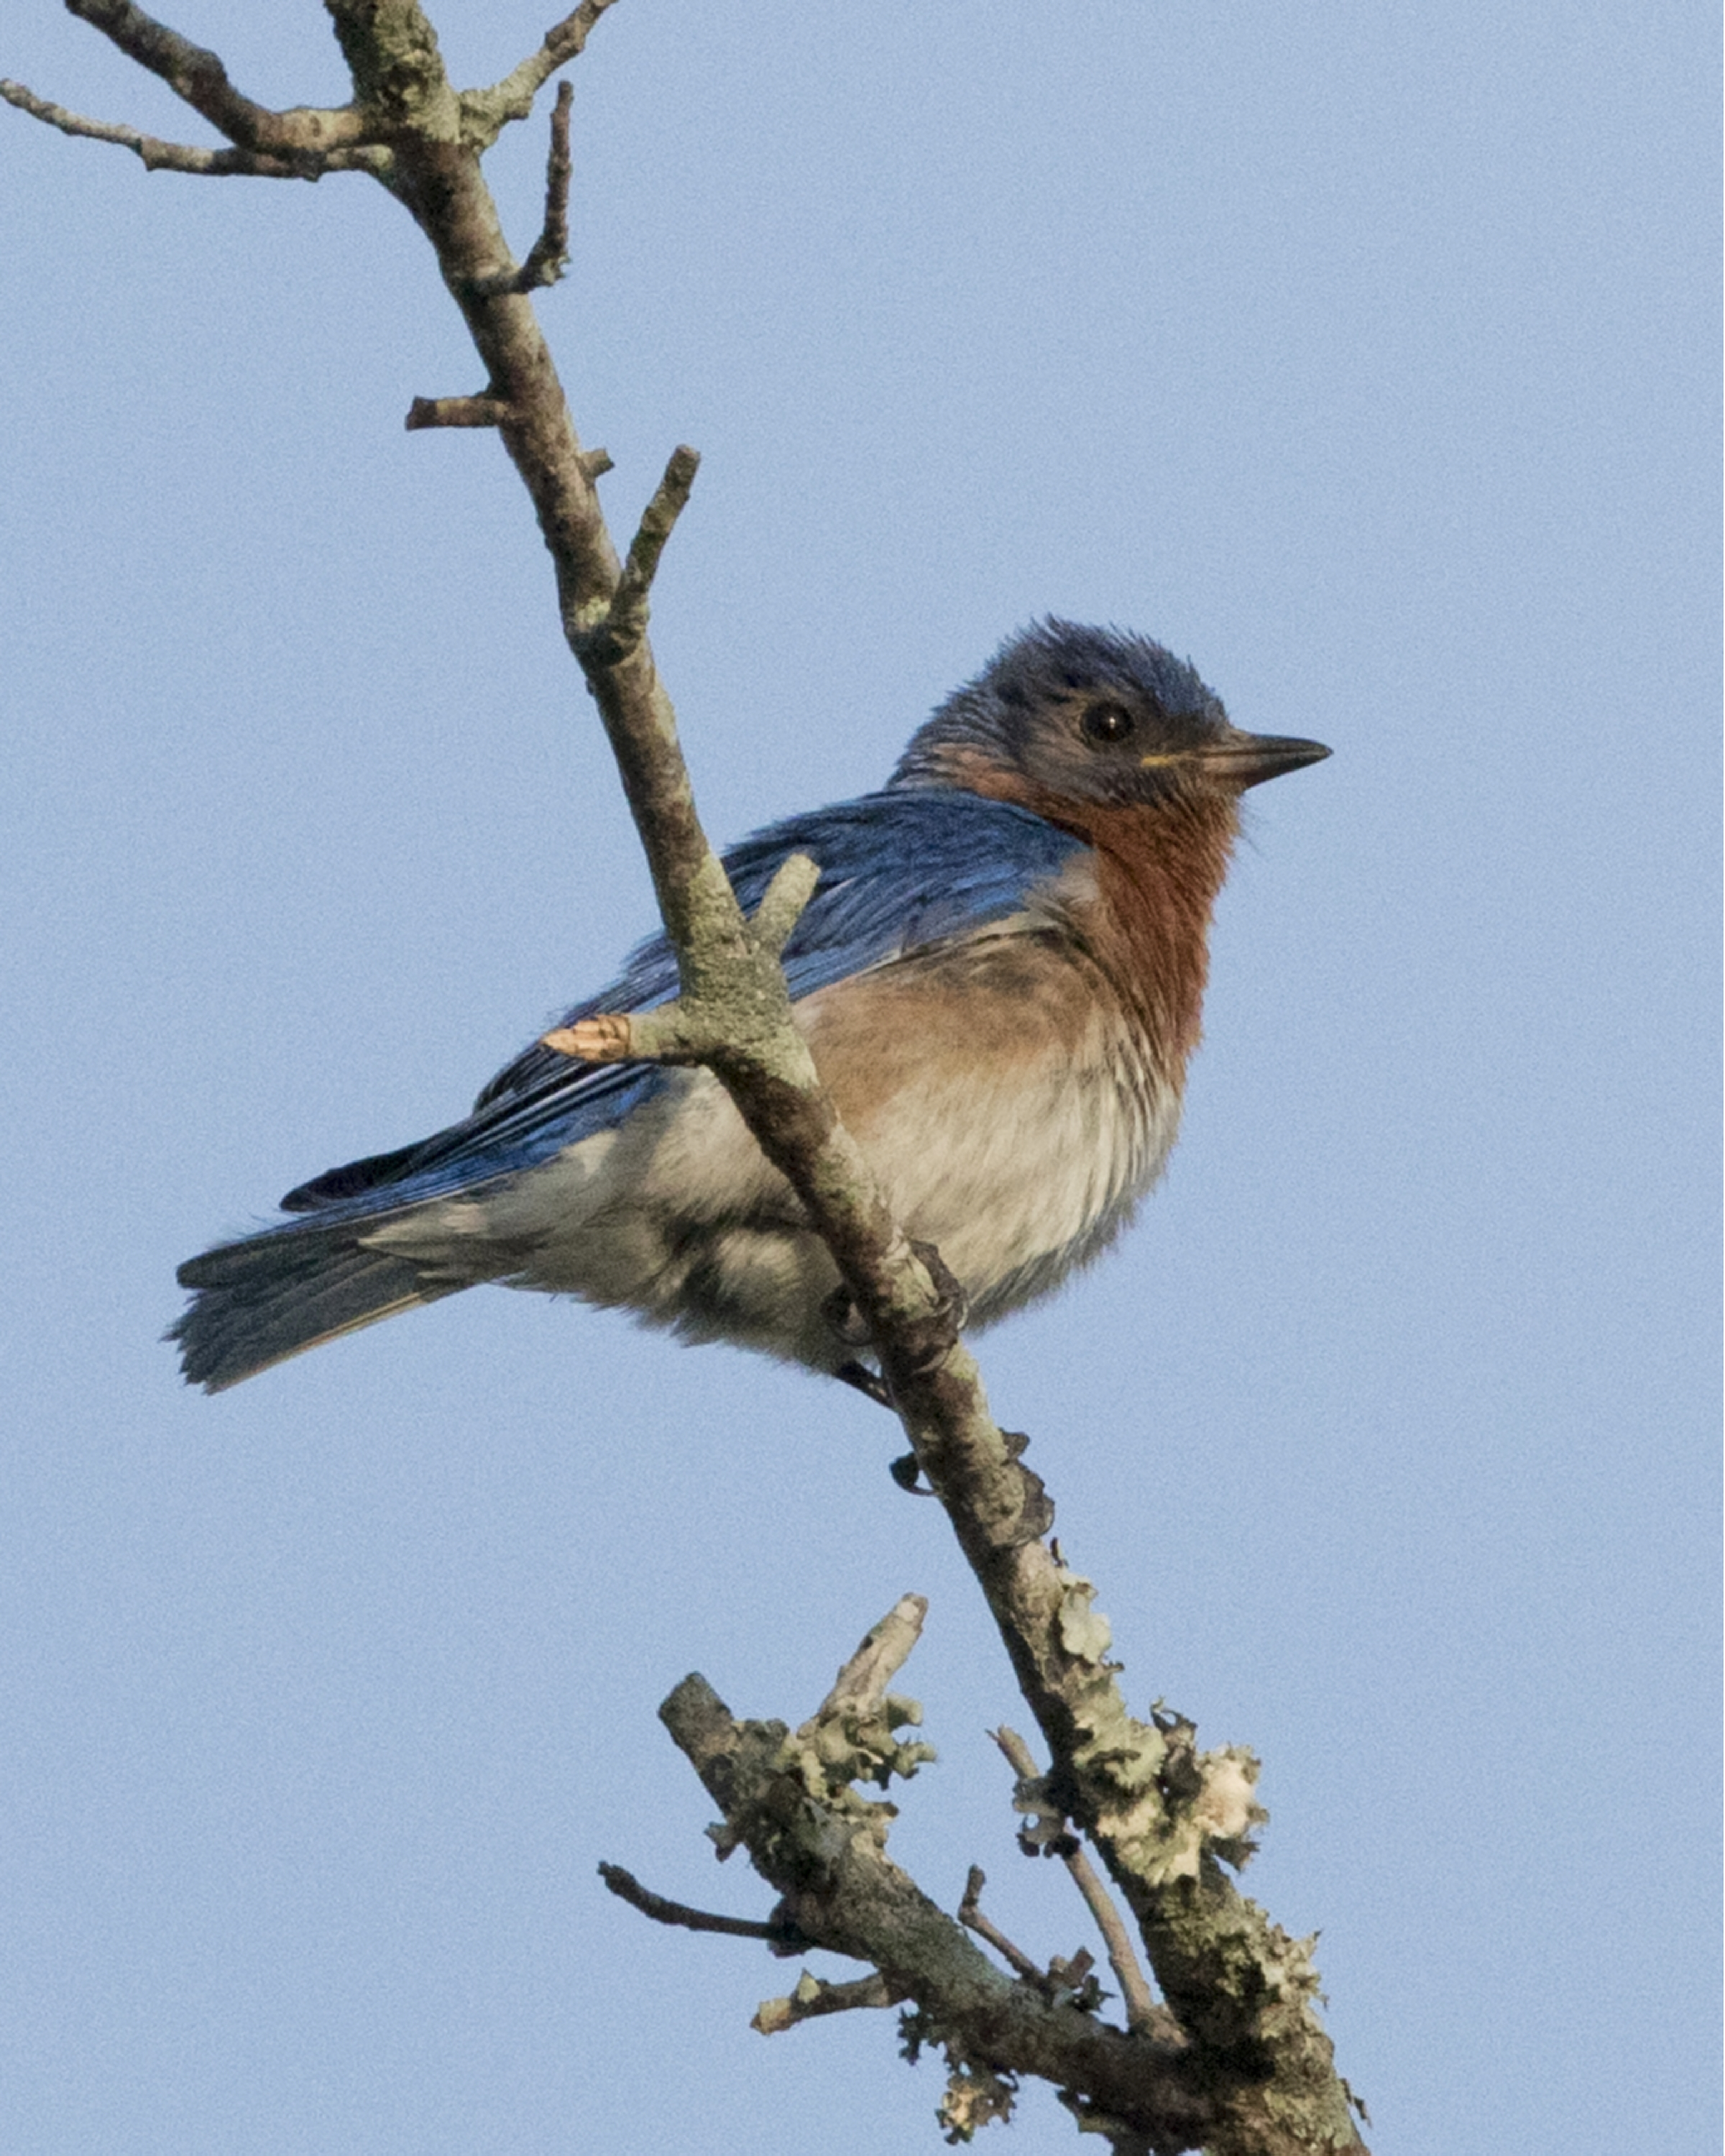 Thankfully the Bluebird babies still have a daddy to watch over them and teach them to fly..